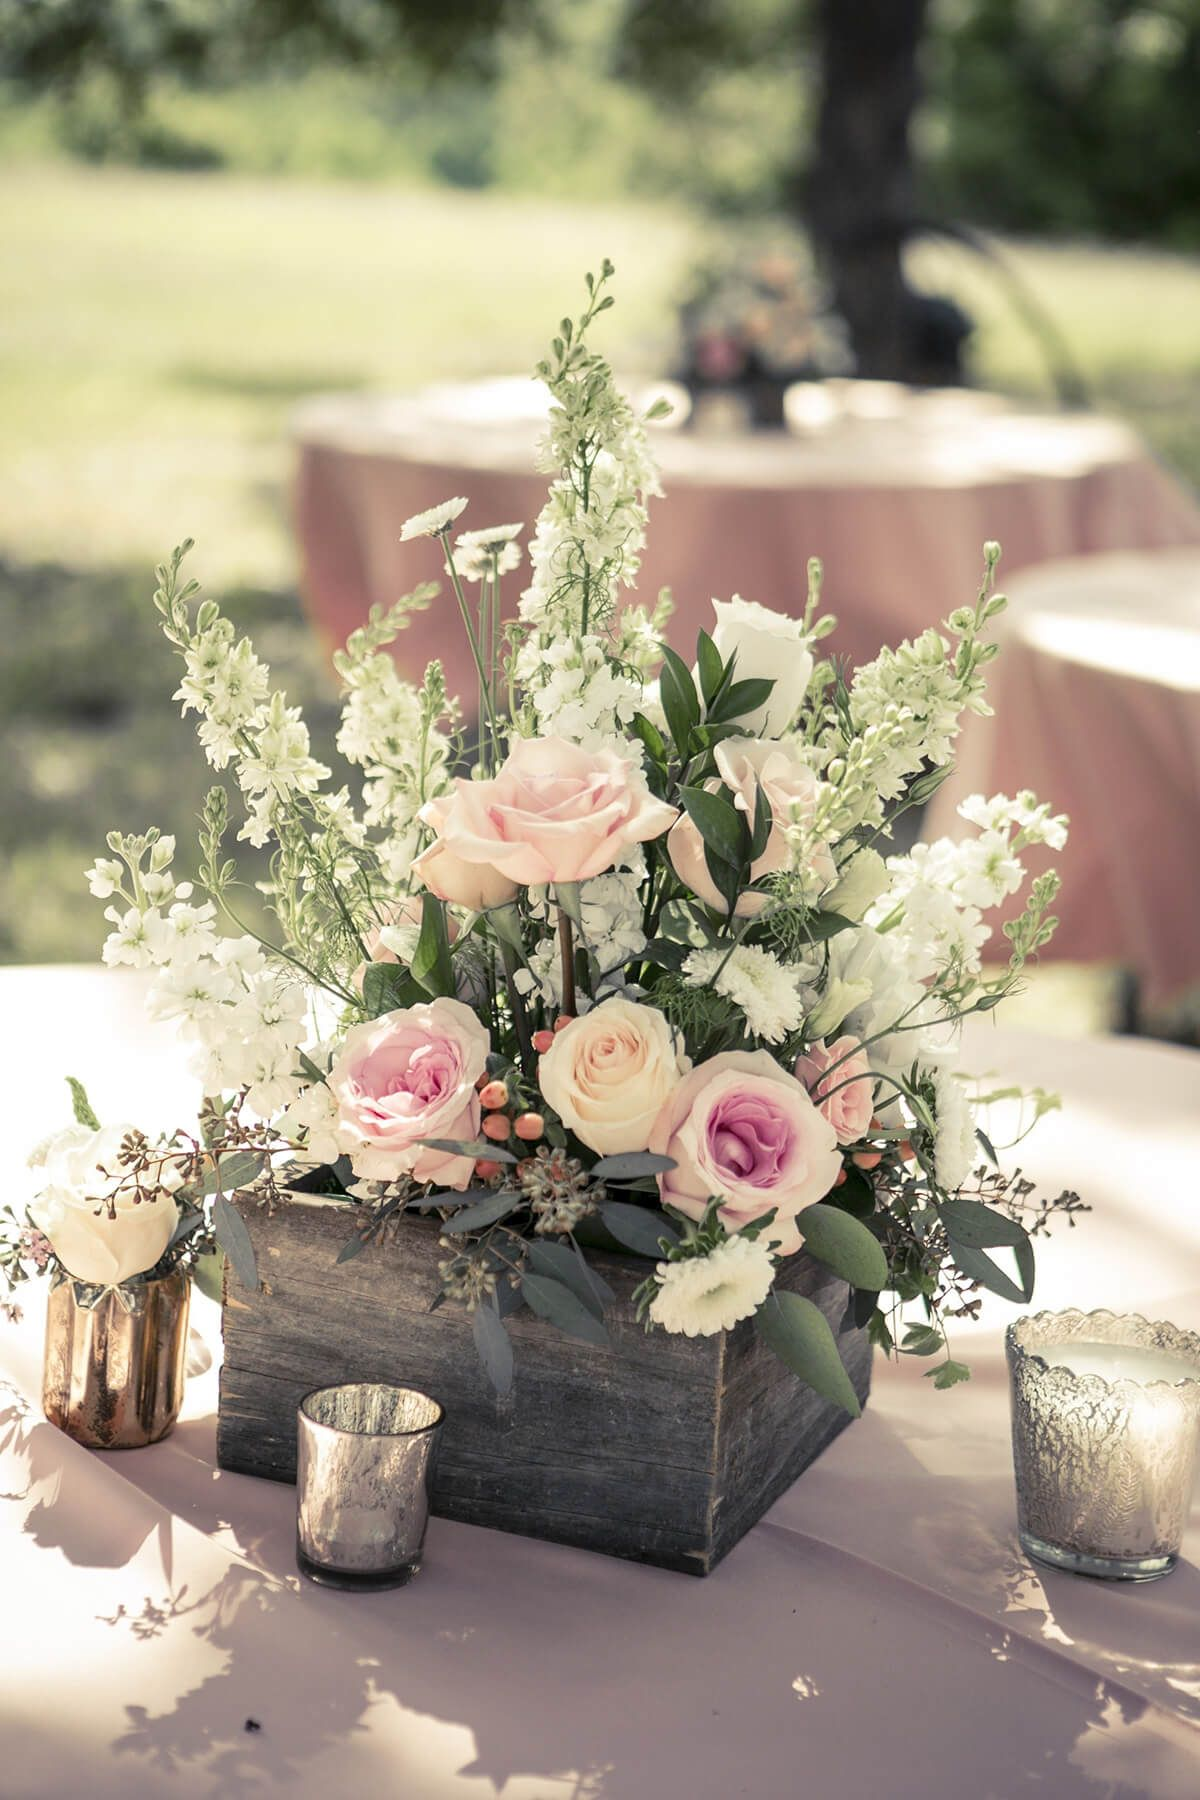 25 simple and cute rustic wooden box centerpiece ideas to liven up rh pinterest com